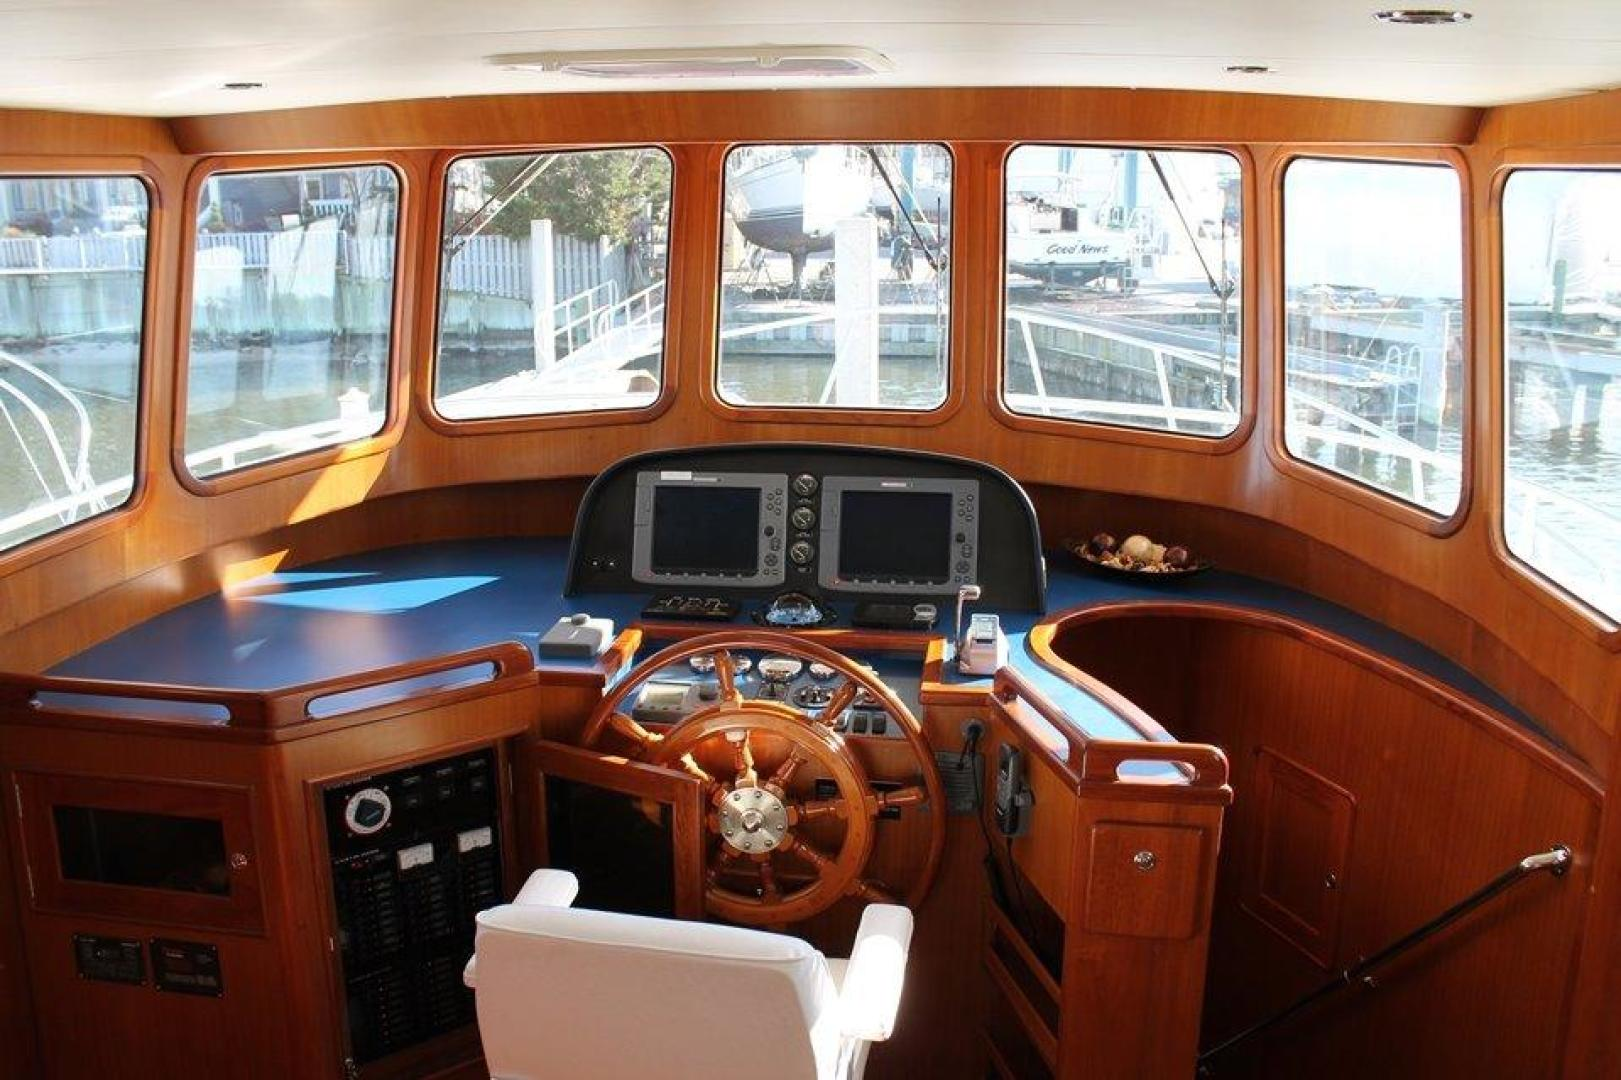 Integrity-496 Trawler 2007-Pier Pressure V St. Johns-Newfoundland And Labrador-Canada-Pilothouse-920708 | Thumbnail